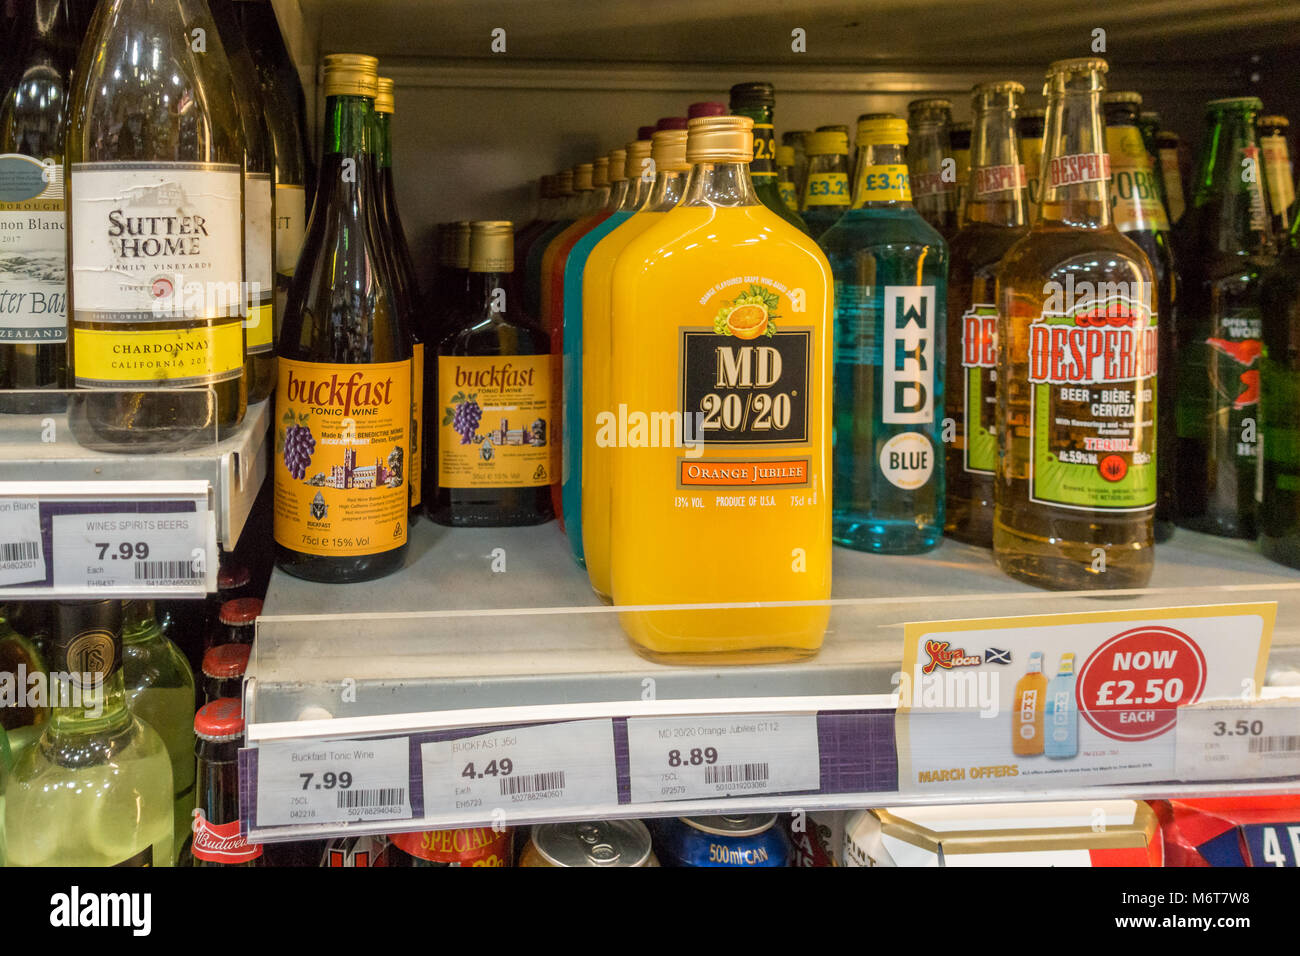 Alcohol, including bottles of Buckfast, MD 50/50 and WKD on sale in off licence in Glasgow, Scotland, UK - Stock Image